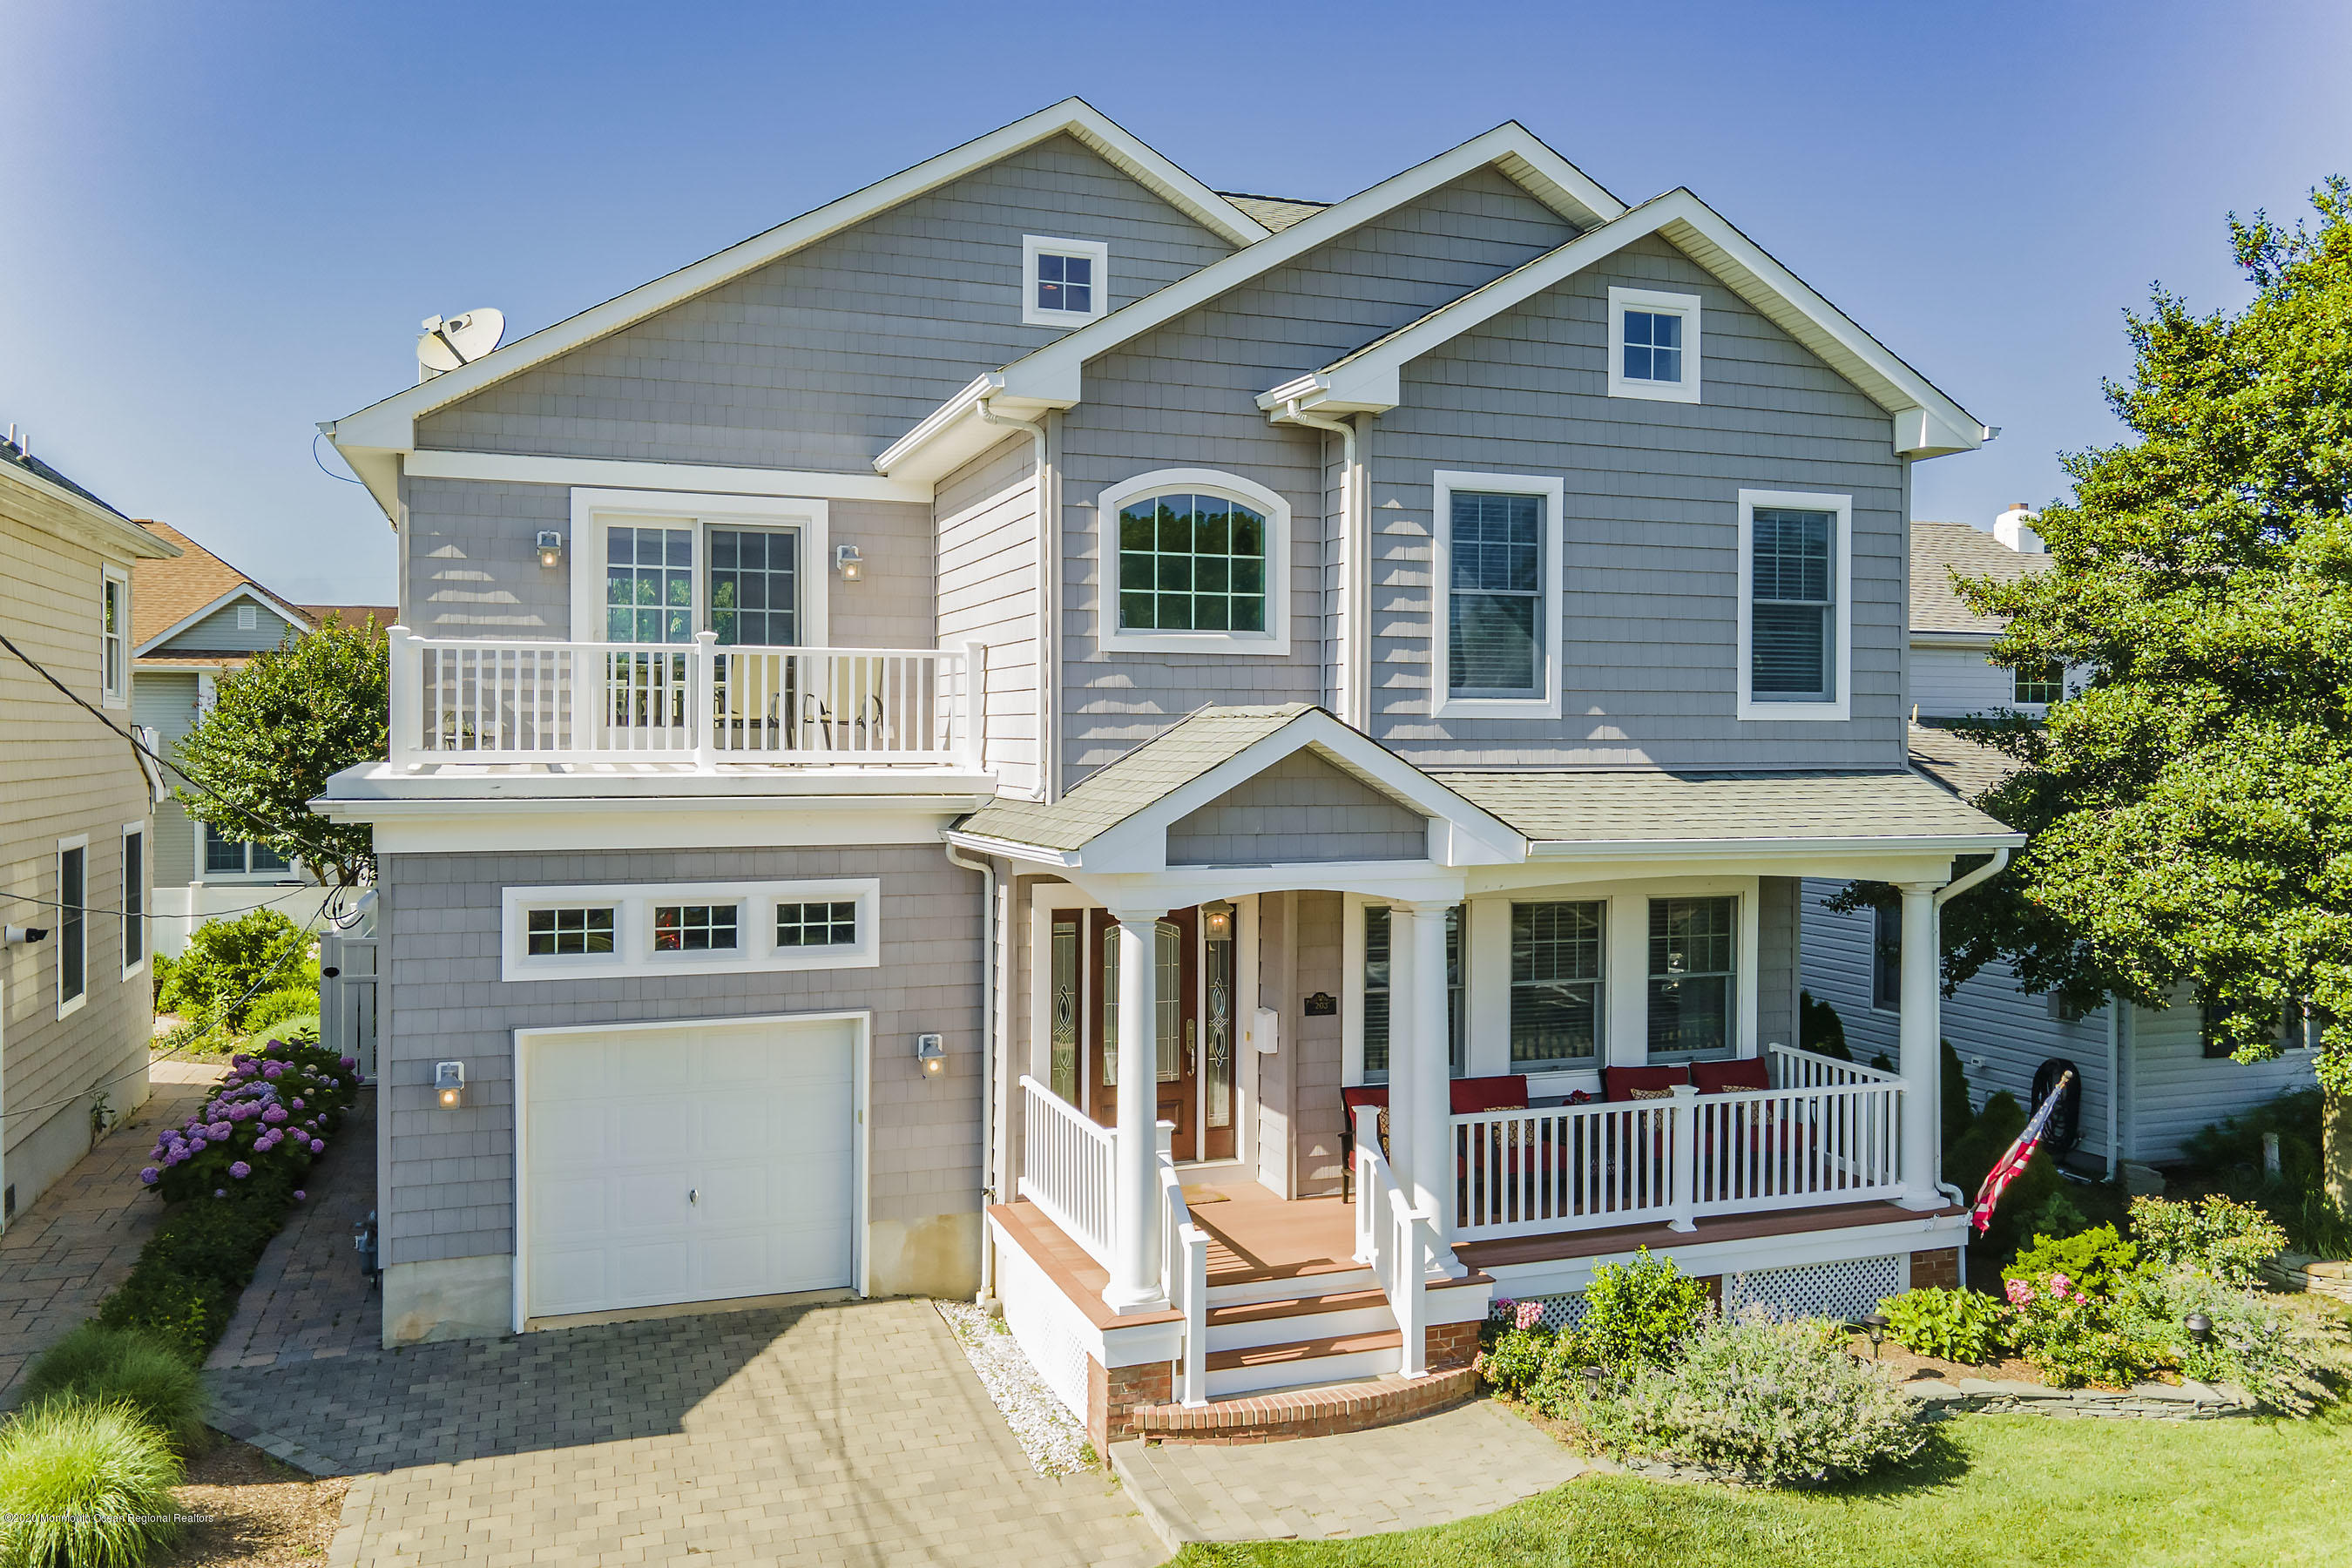 Photo of 203 Homestead Avenue, Point Pleasant Beach, NJ 08742